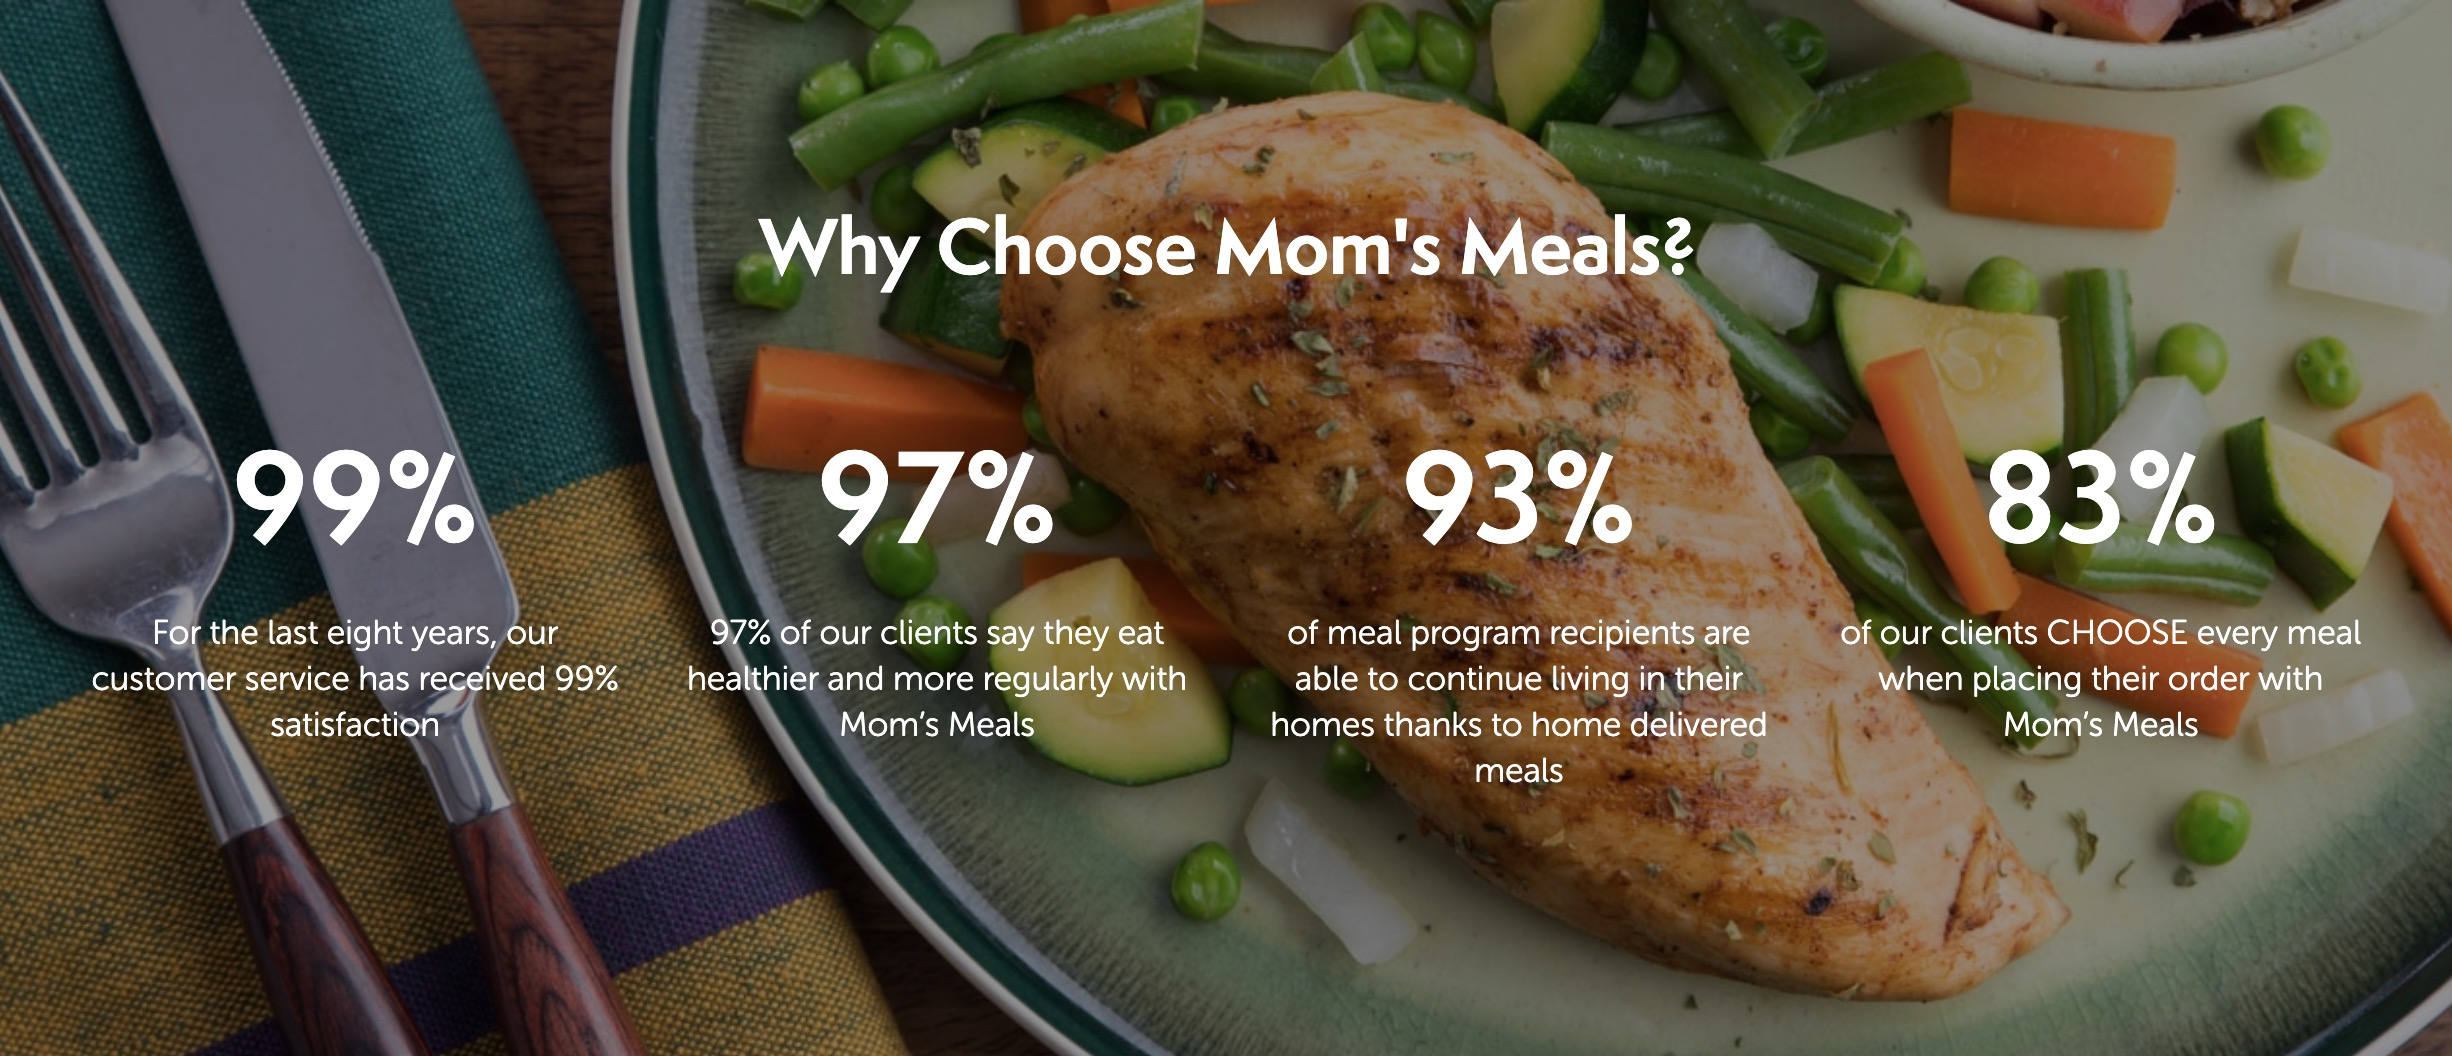 moms meals why choose